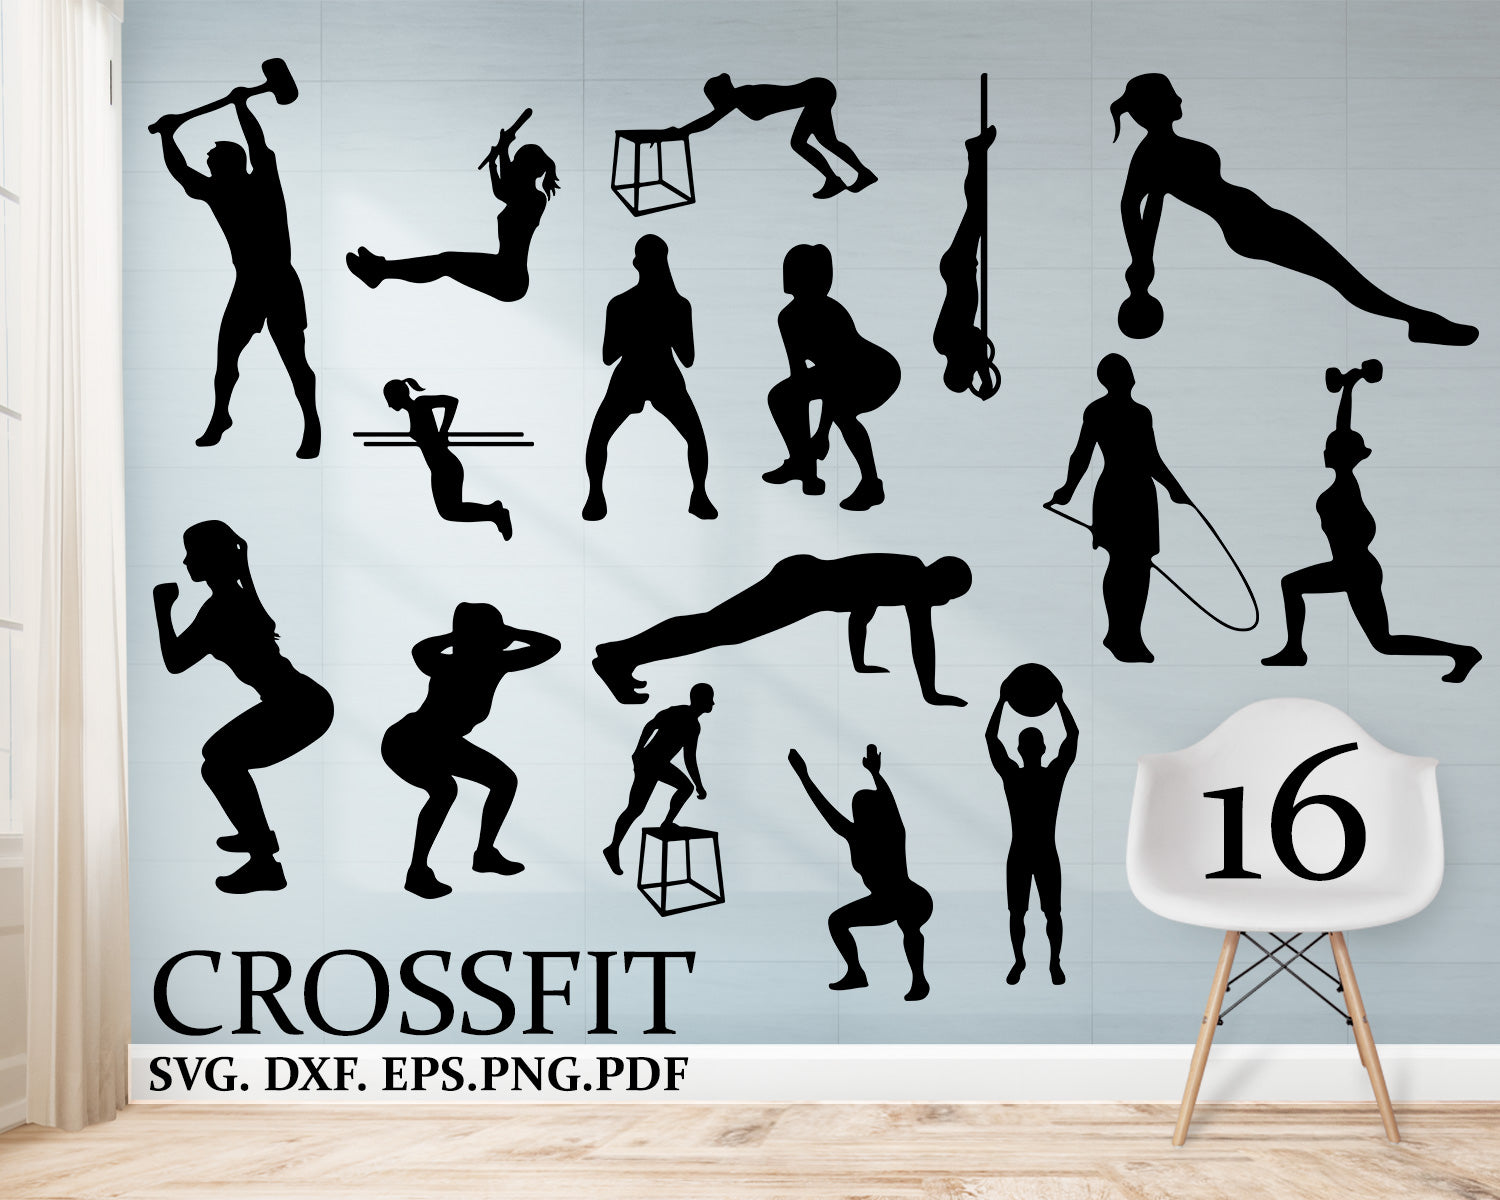 Crossfit Svg Files Crossfit Clipart Silhouette Weightlifting Svg Wo Clipartic